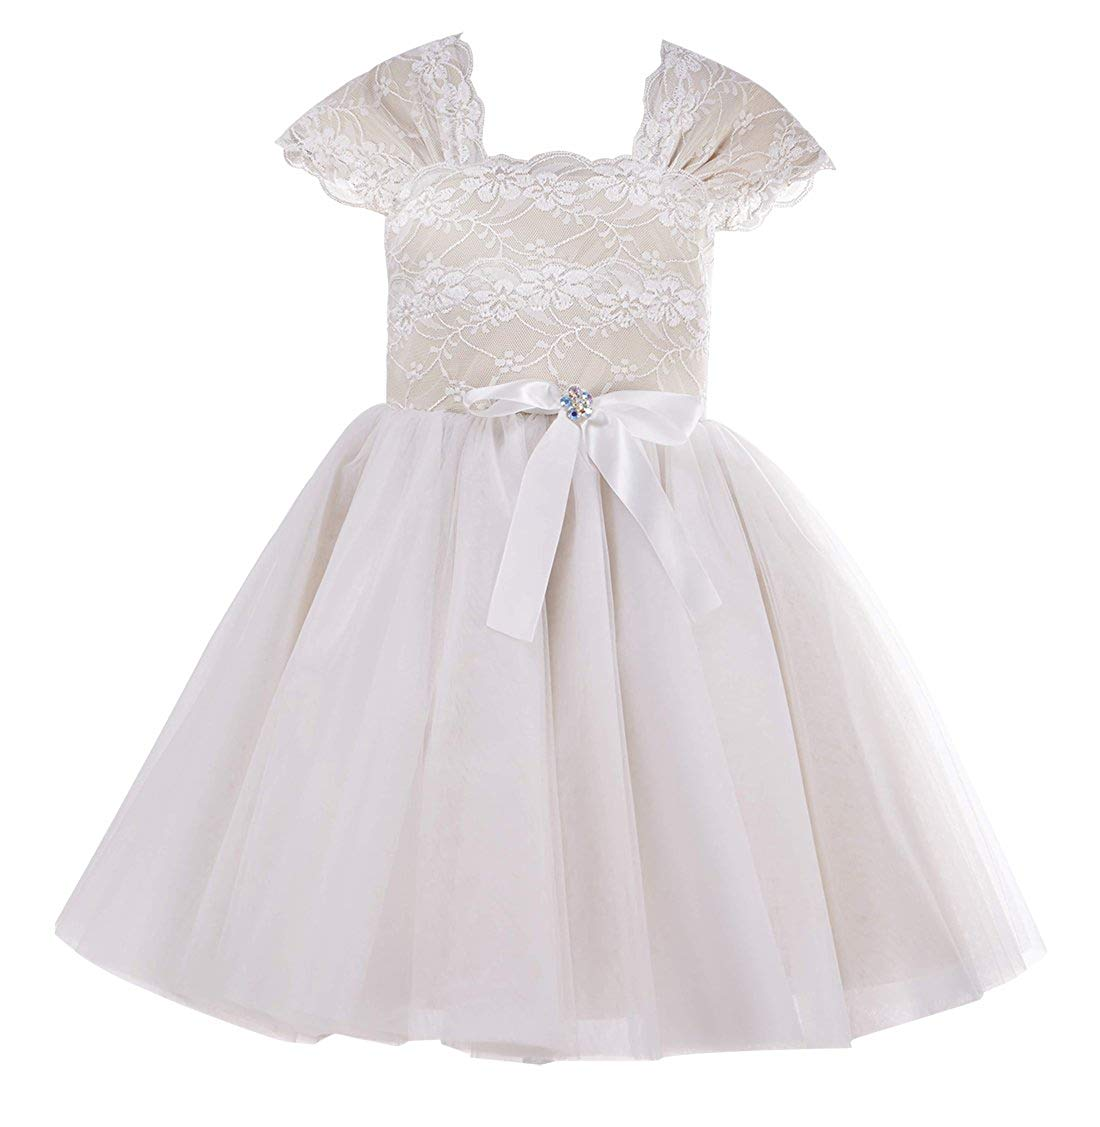 d5feffd0cd2 Get Quotations · princhar Lace Tulle Flower Girl Dress Toddler Chritening  Baptism Kids Party Dress